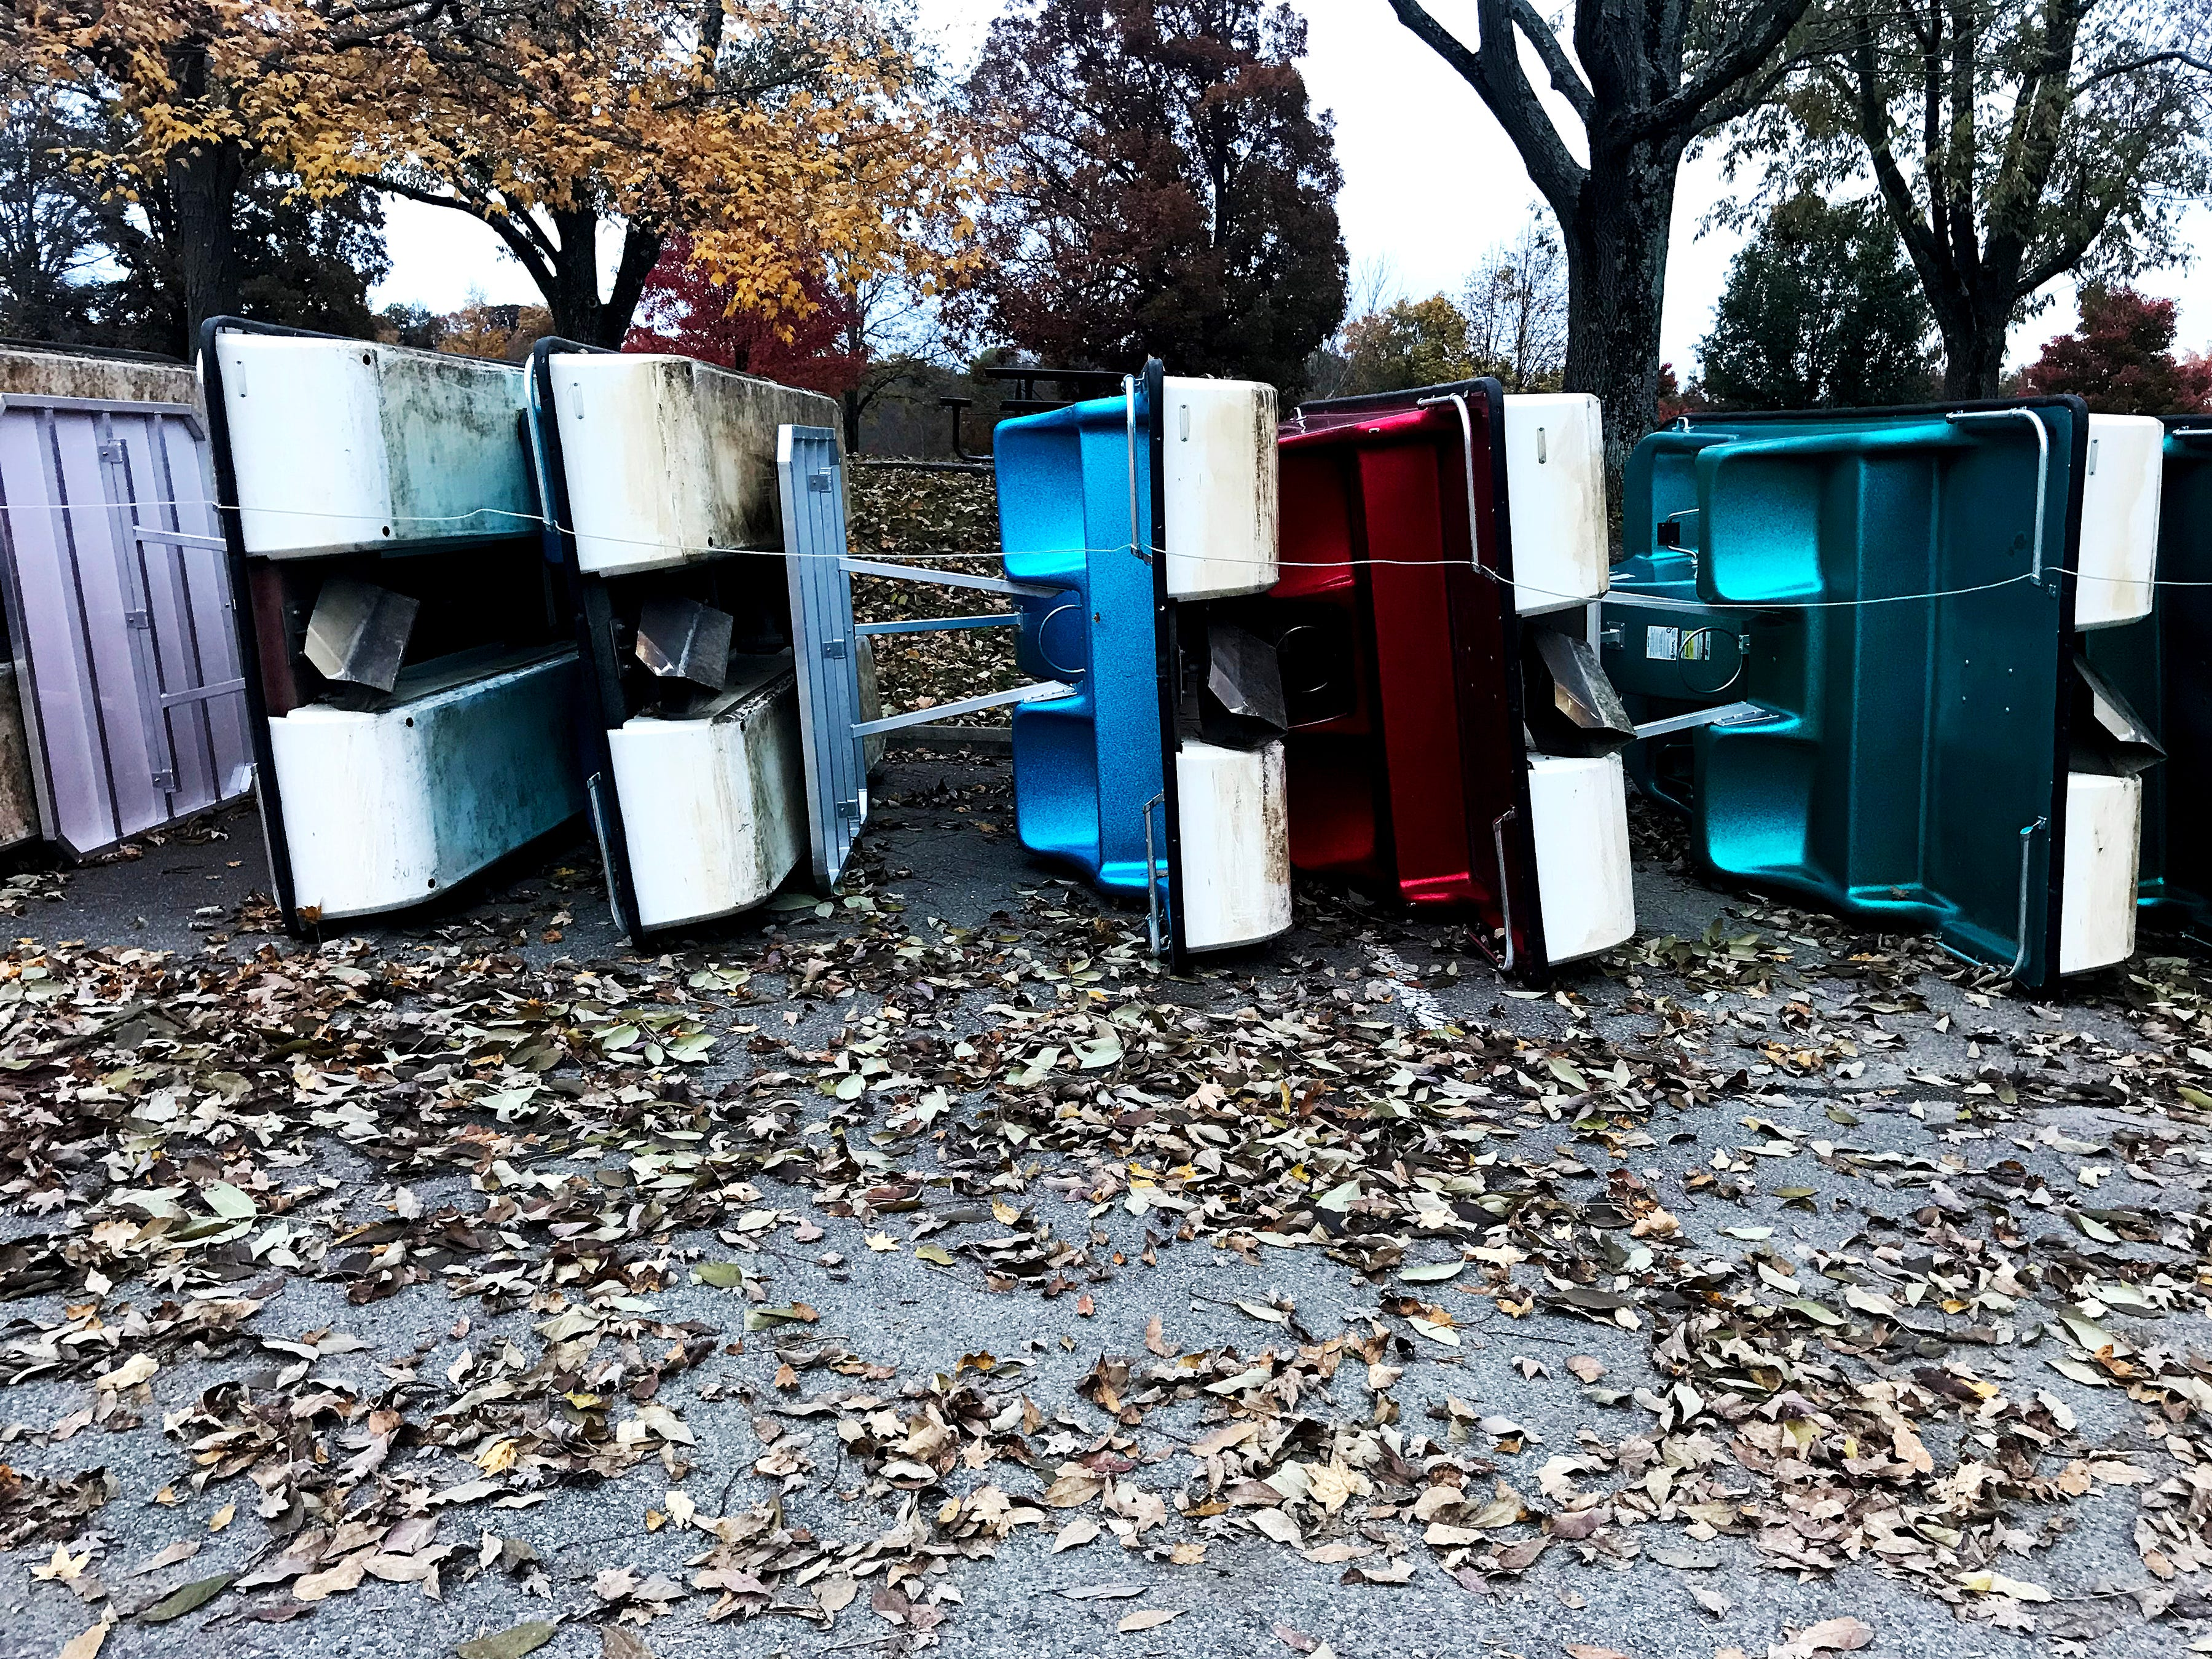 Paddleboats are stored for the fall and winter seasons at Winton Woods Park Sunday, November 4, 2018.